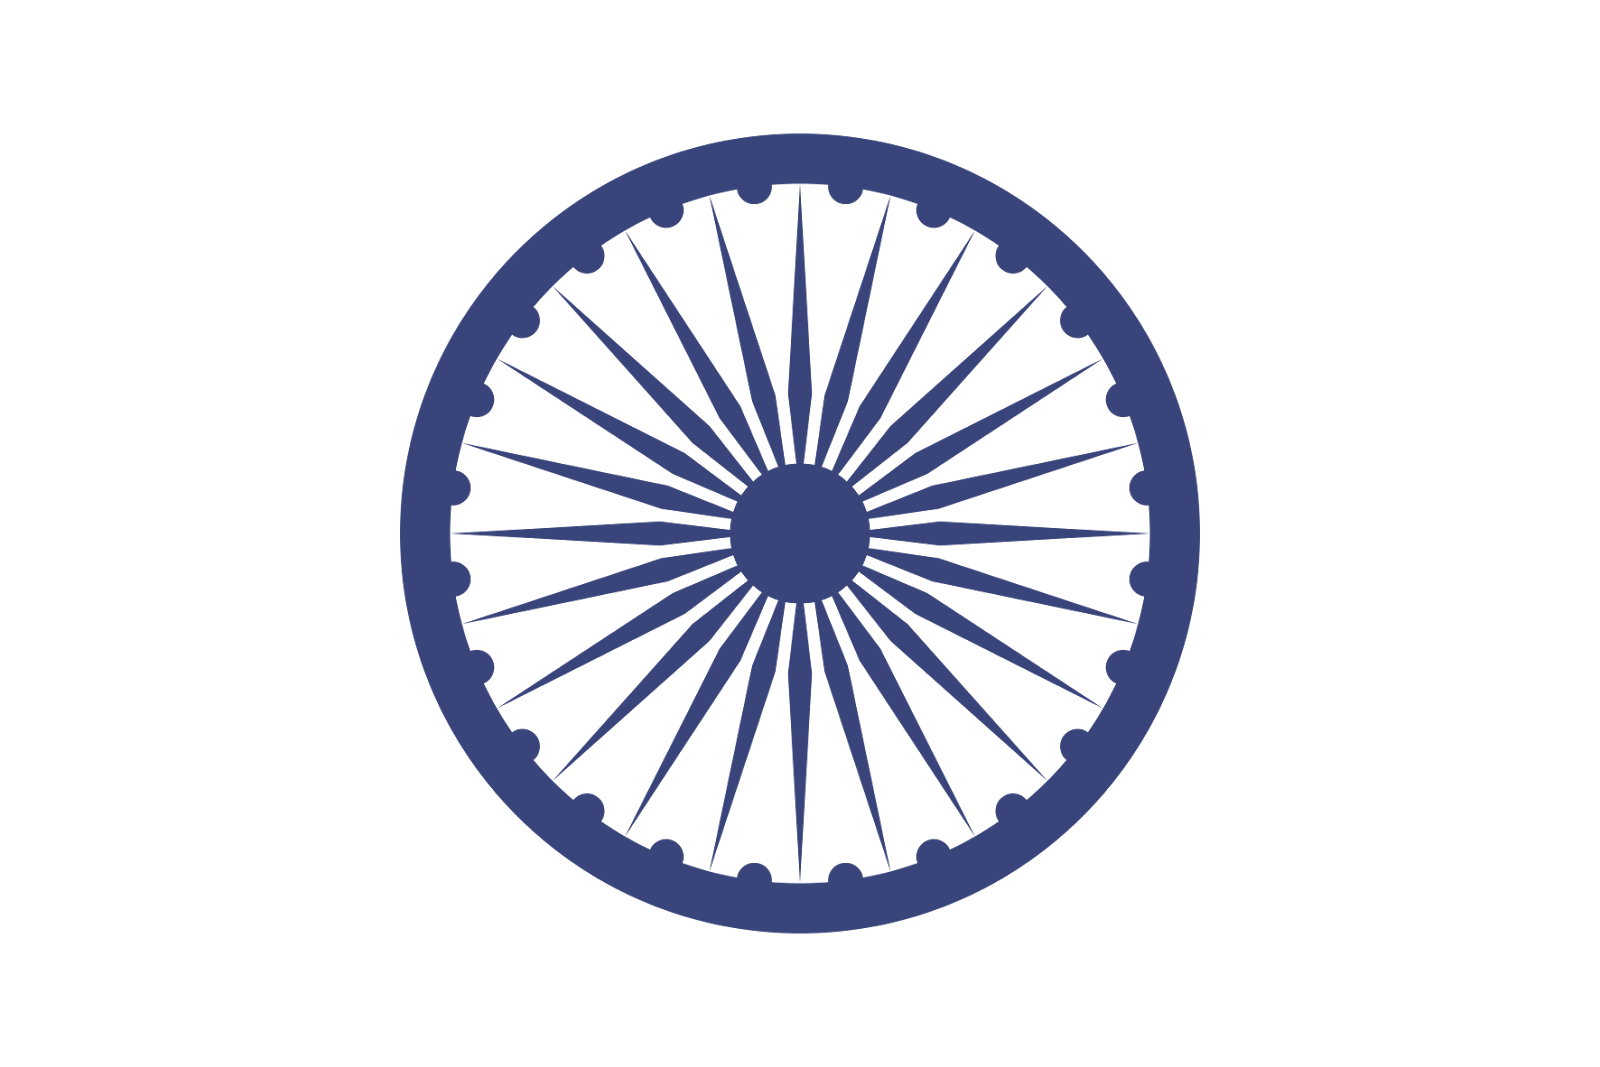 High Resolution Ashoka Chakra Png Icon #46978.